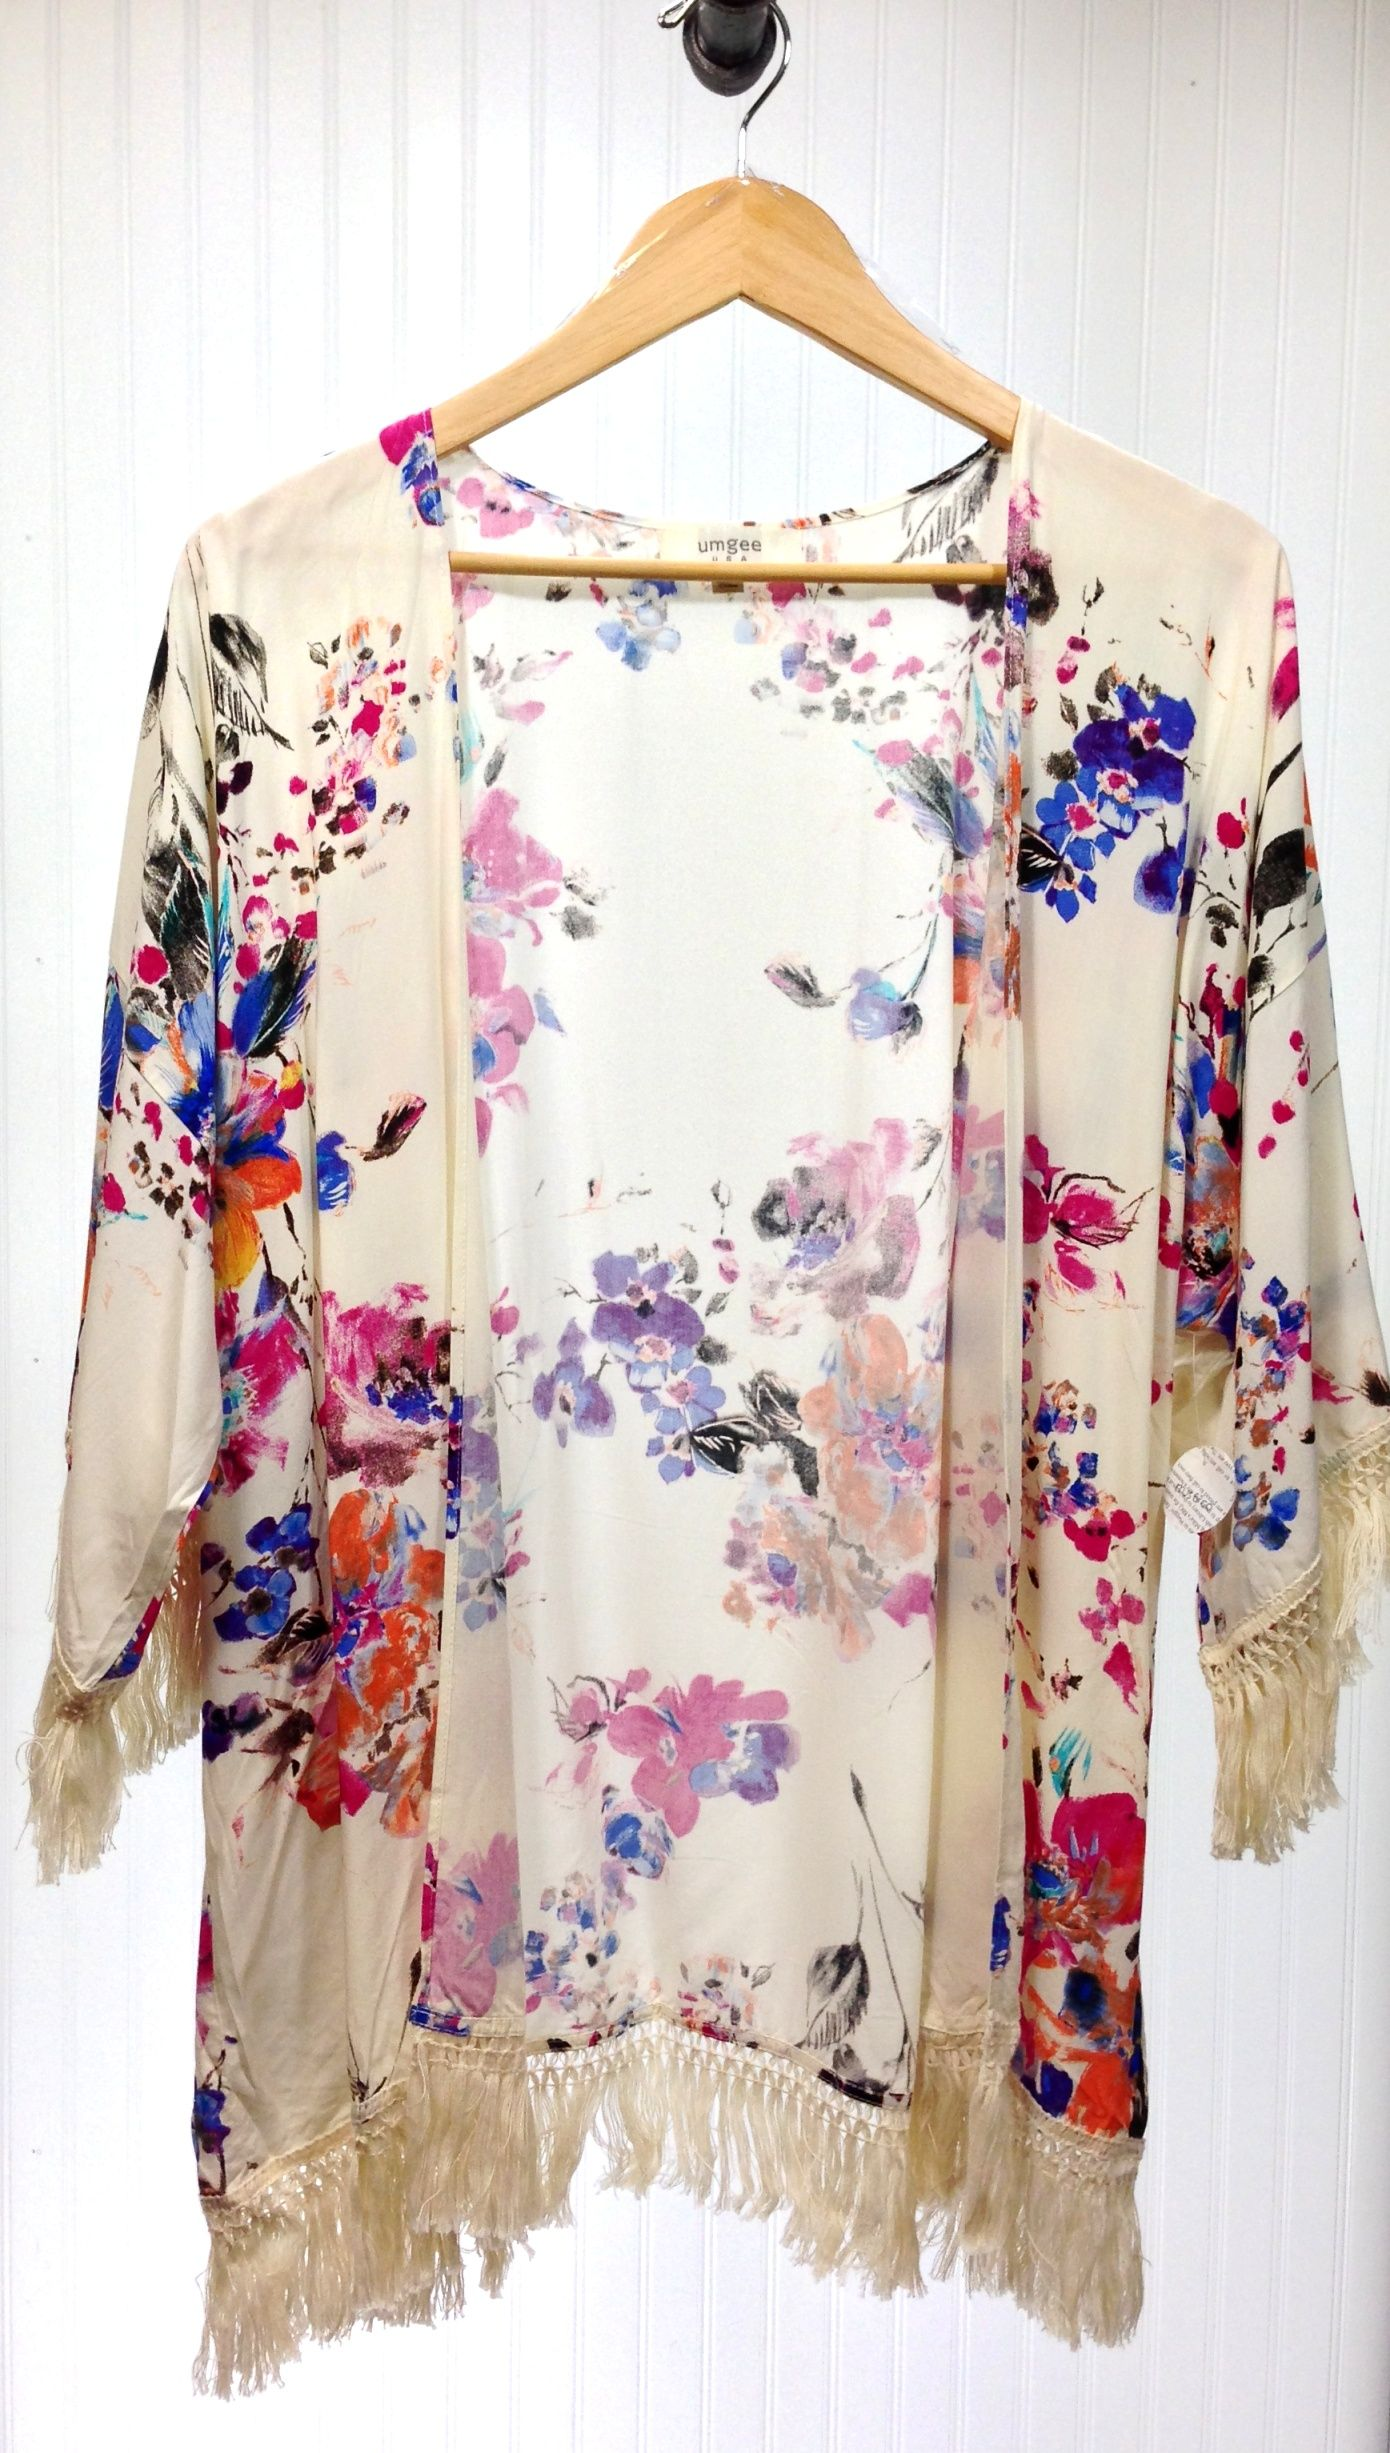 Lulu Kimono Cardigan in White Floral with Fringe | Fashion ...